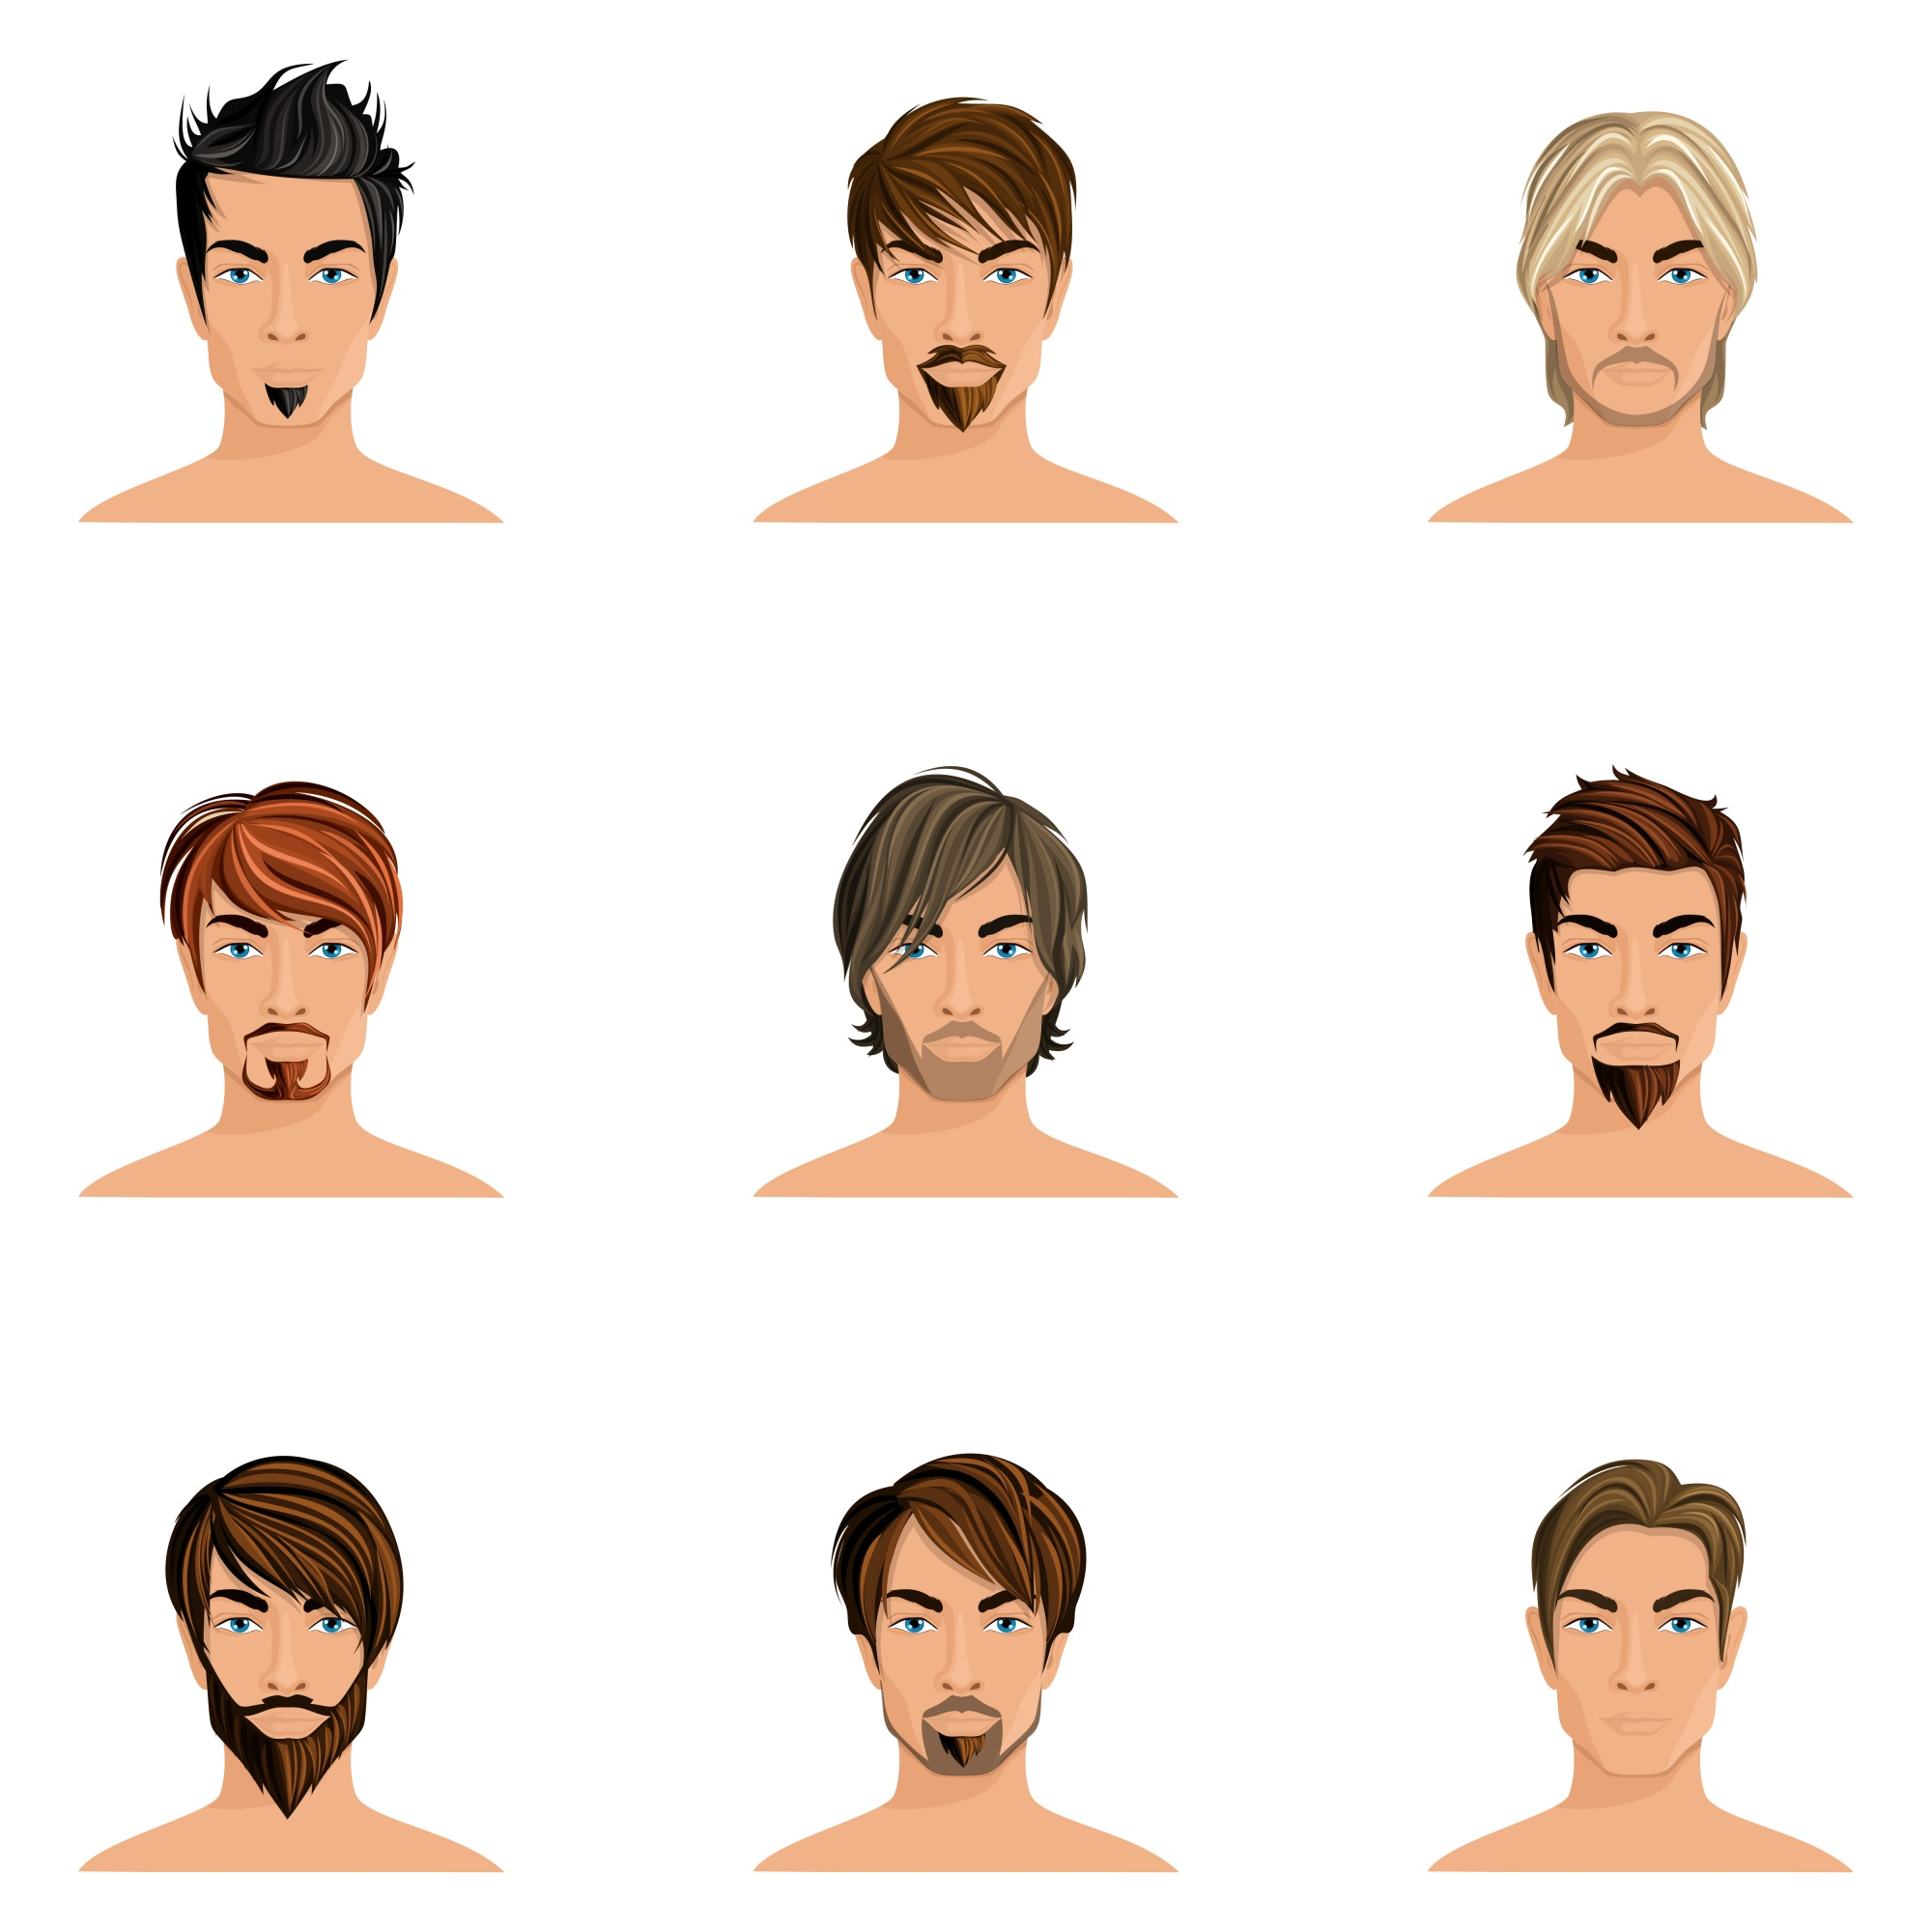 Handsome man male avatars set with haircut styles isolated vector illustration